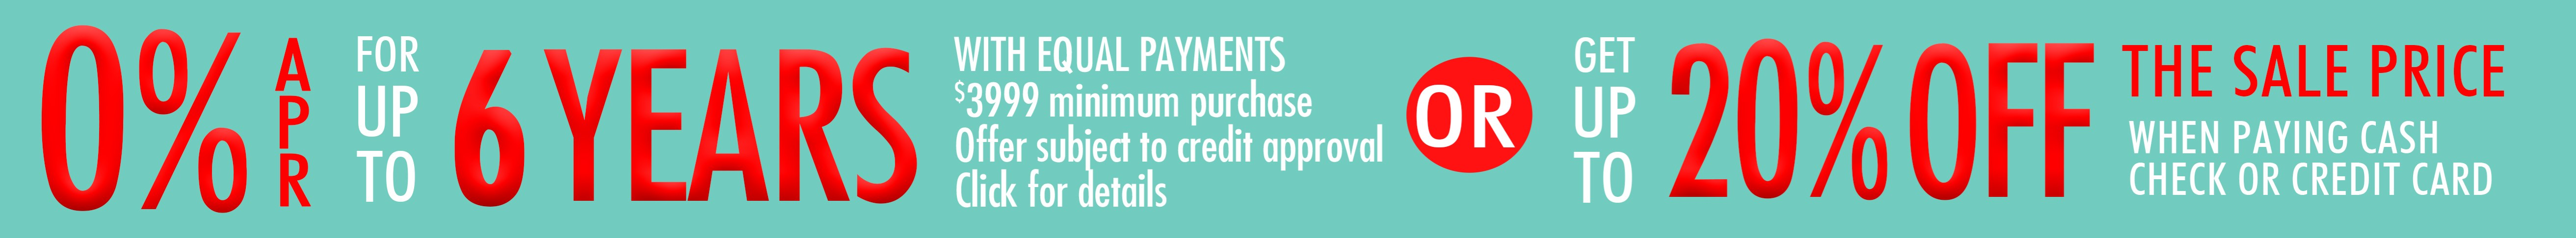 0% APR for up to 6 years OR 20% off sale prices when paying by cash, check, or credit card